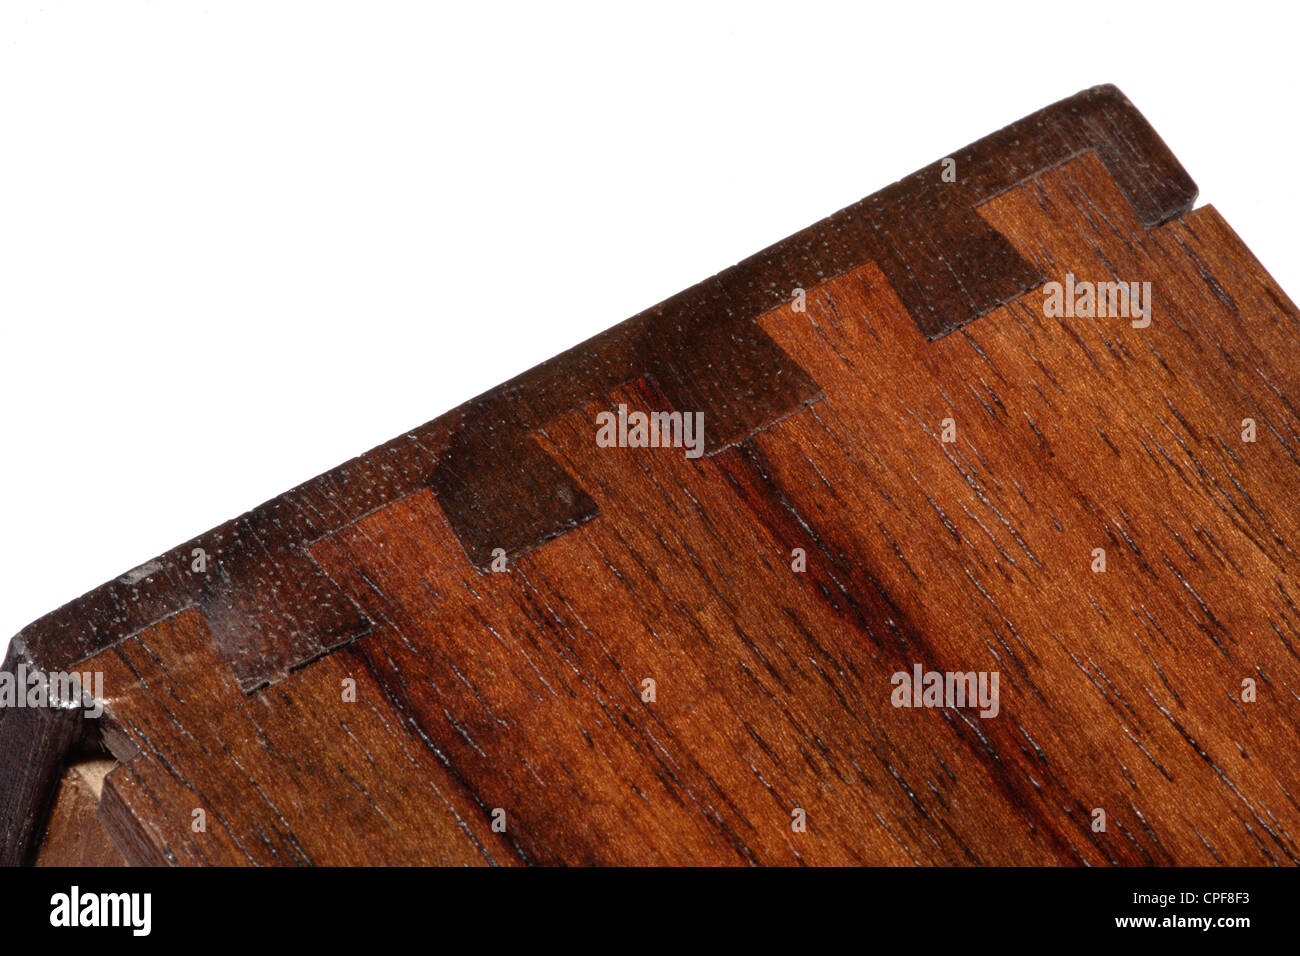 dating furniture dovetail joints